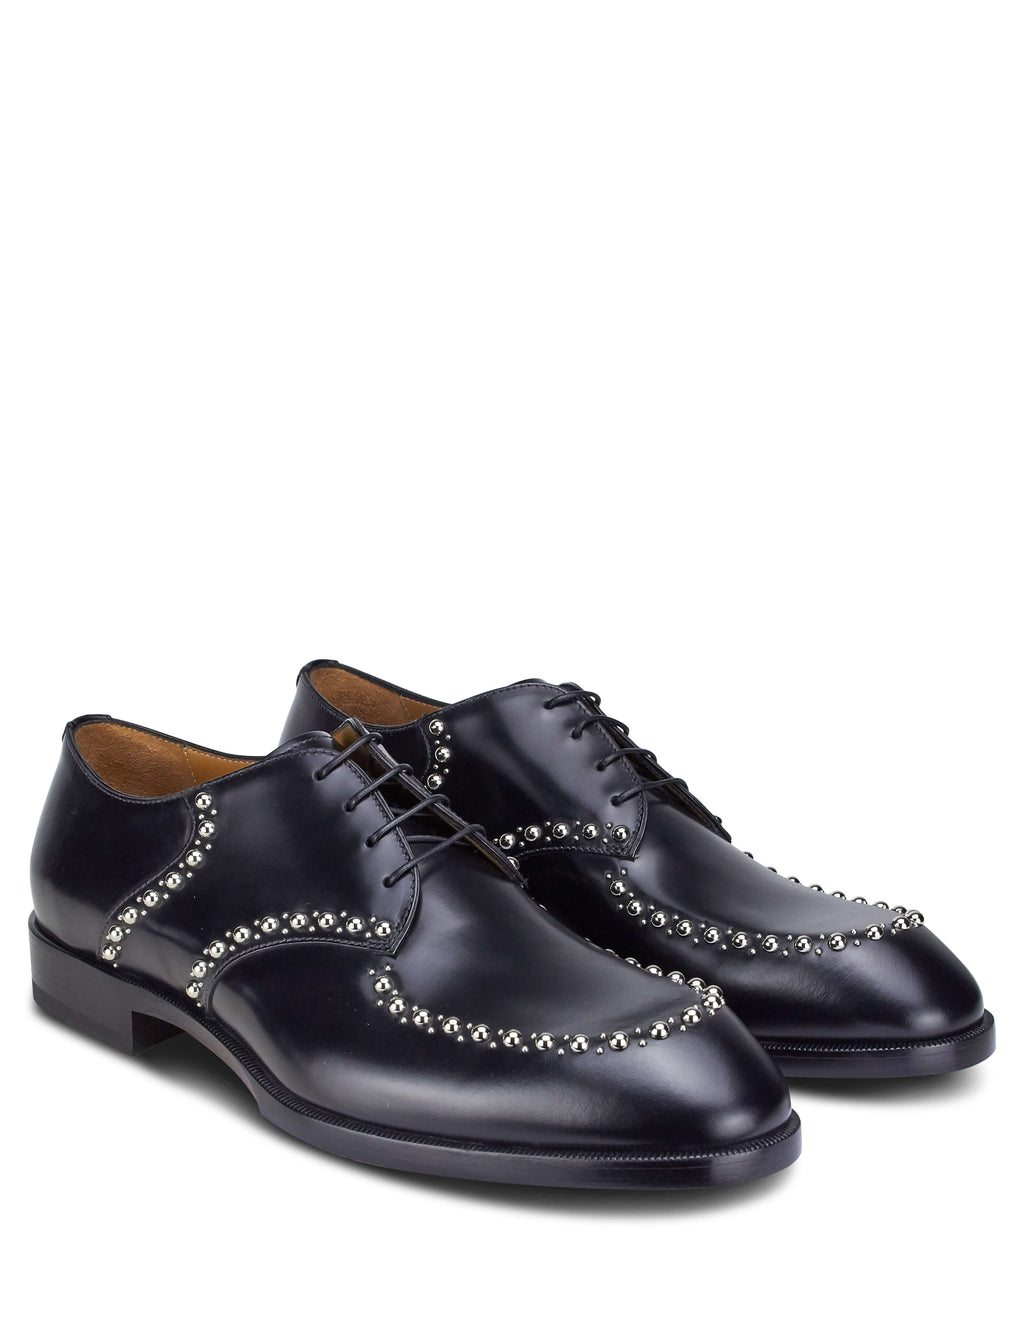 Christian Louboutin Men's Giulio Fashion Black What A Man Etalon Oxford Shoes 1191014BK01